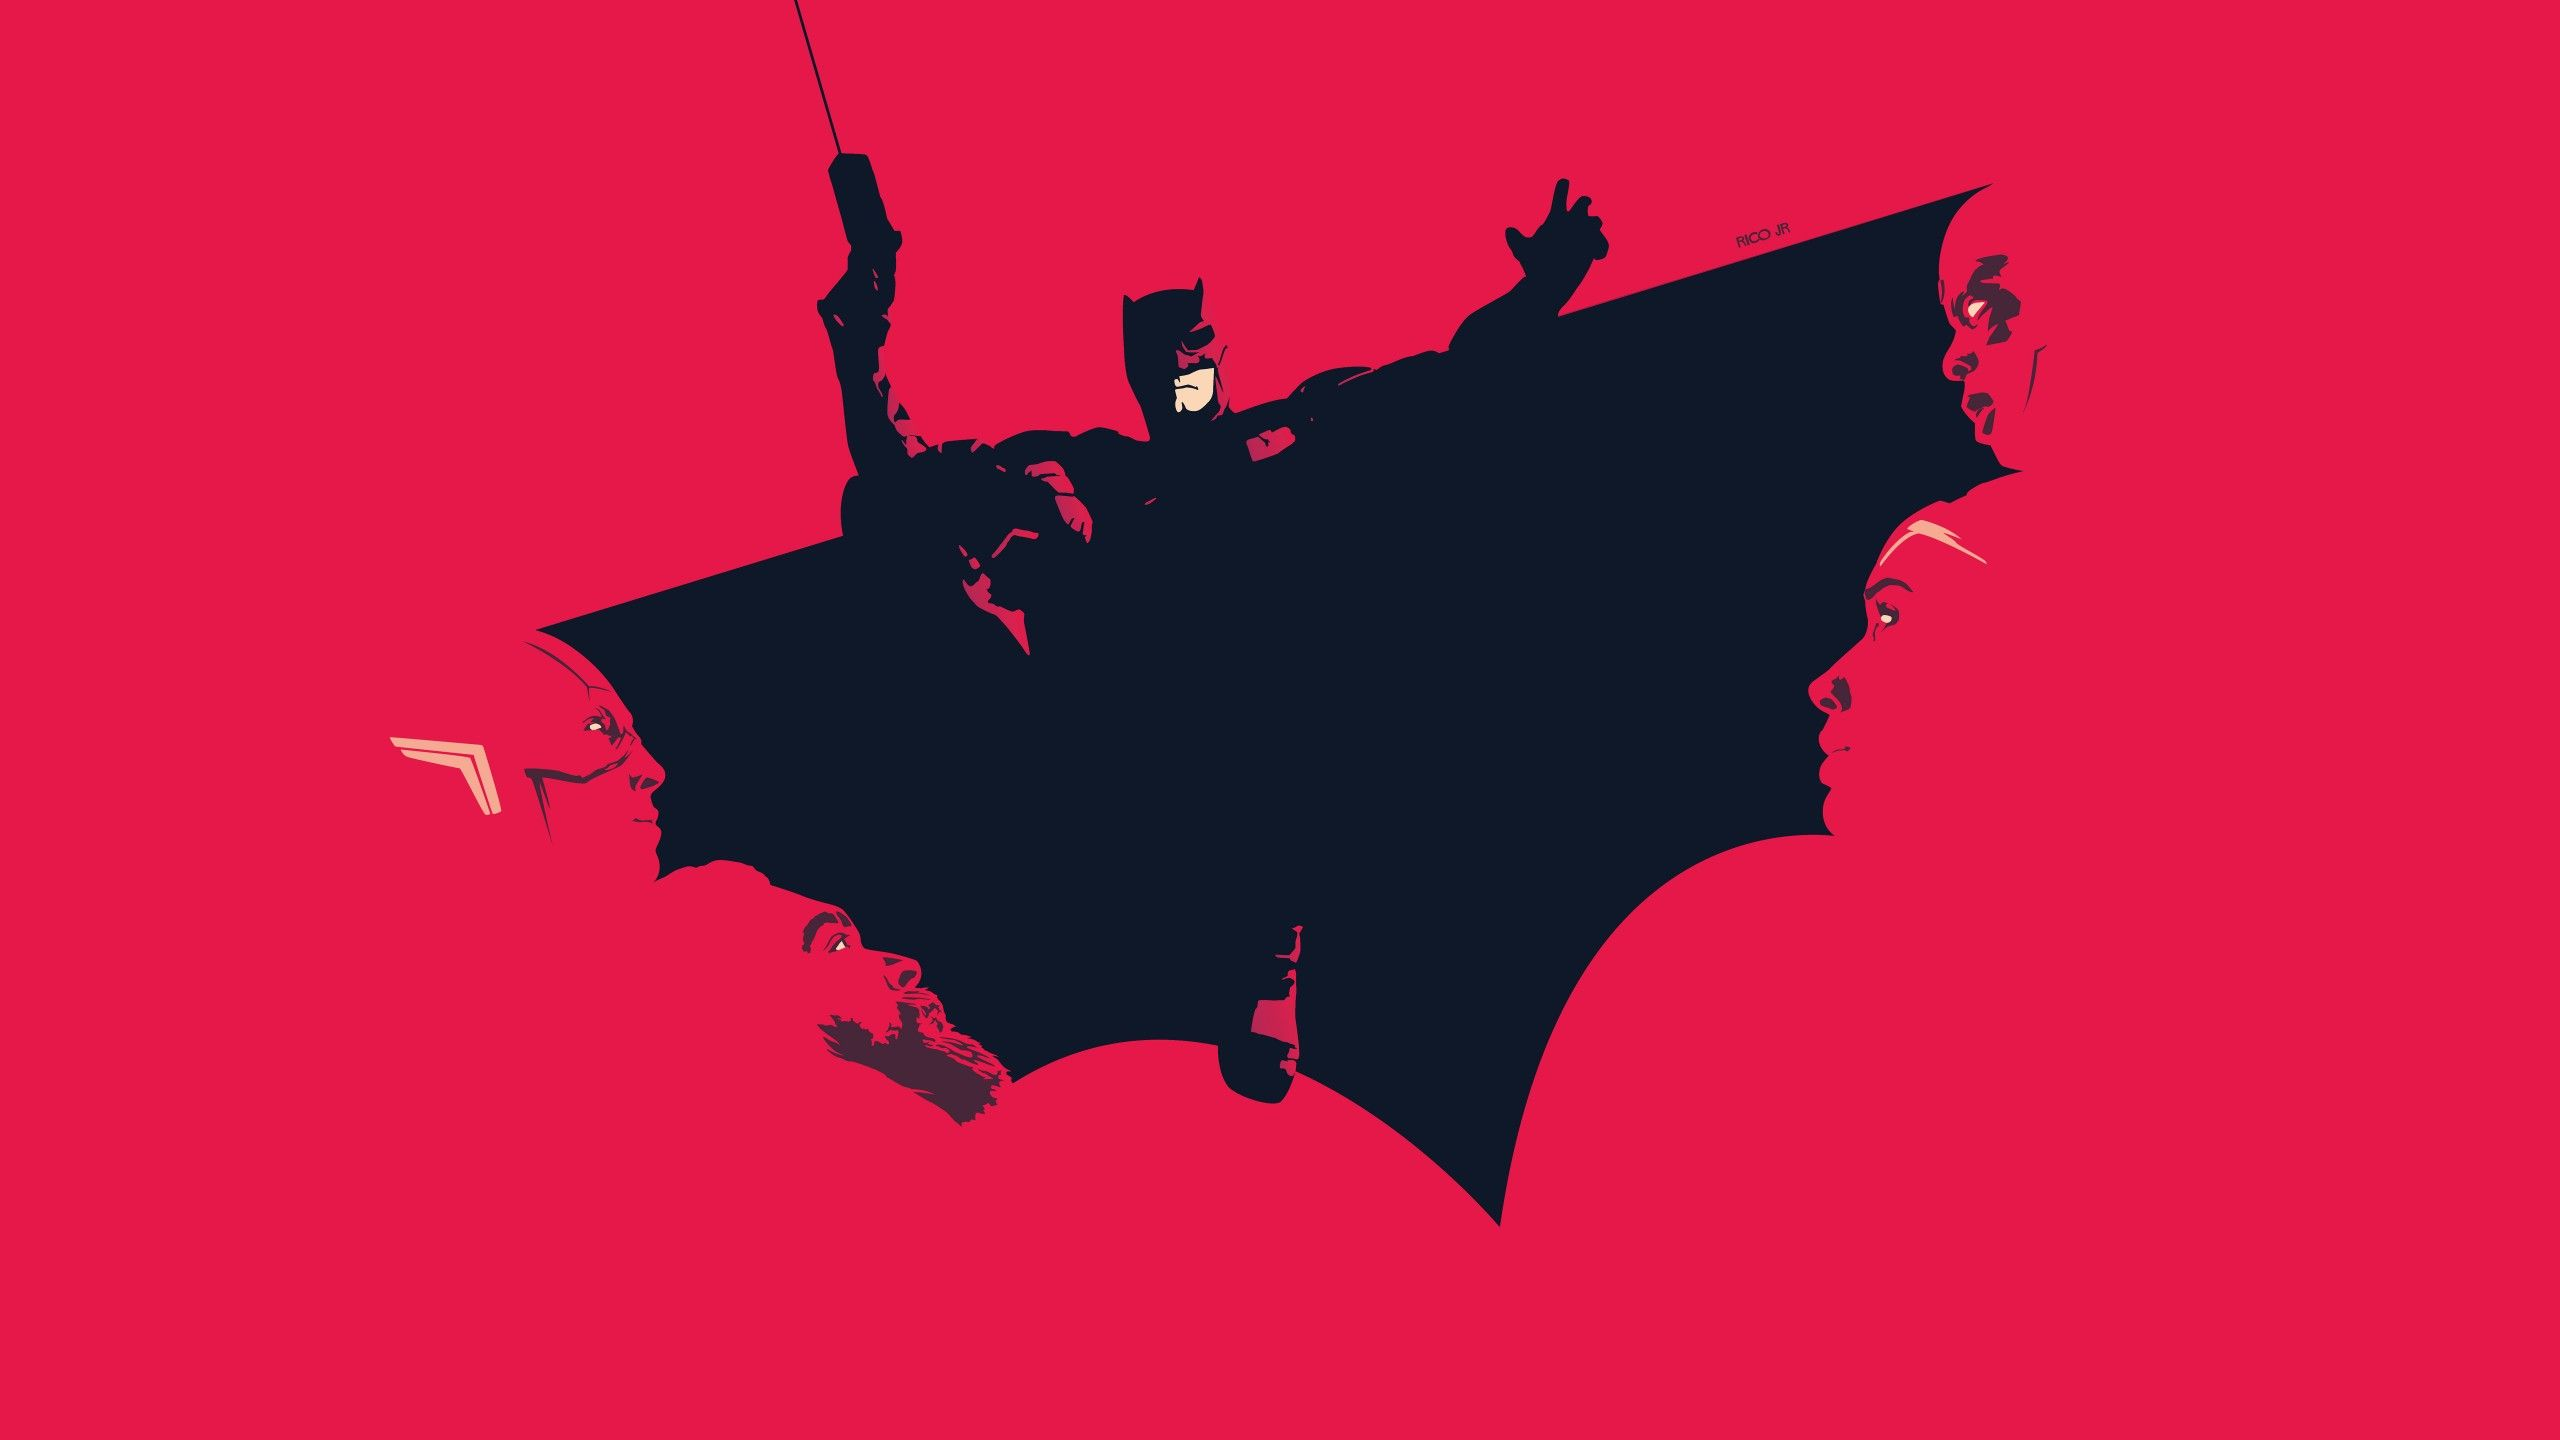 Justice League Minimalist Wallpapers - Wallpaper Cave